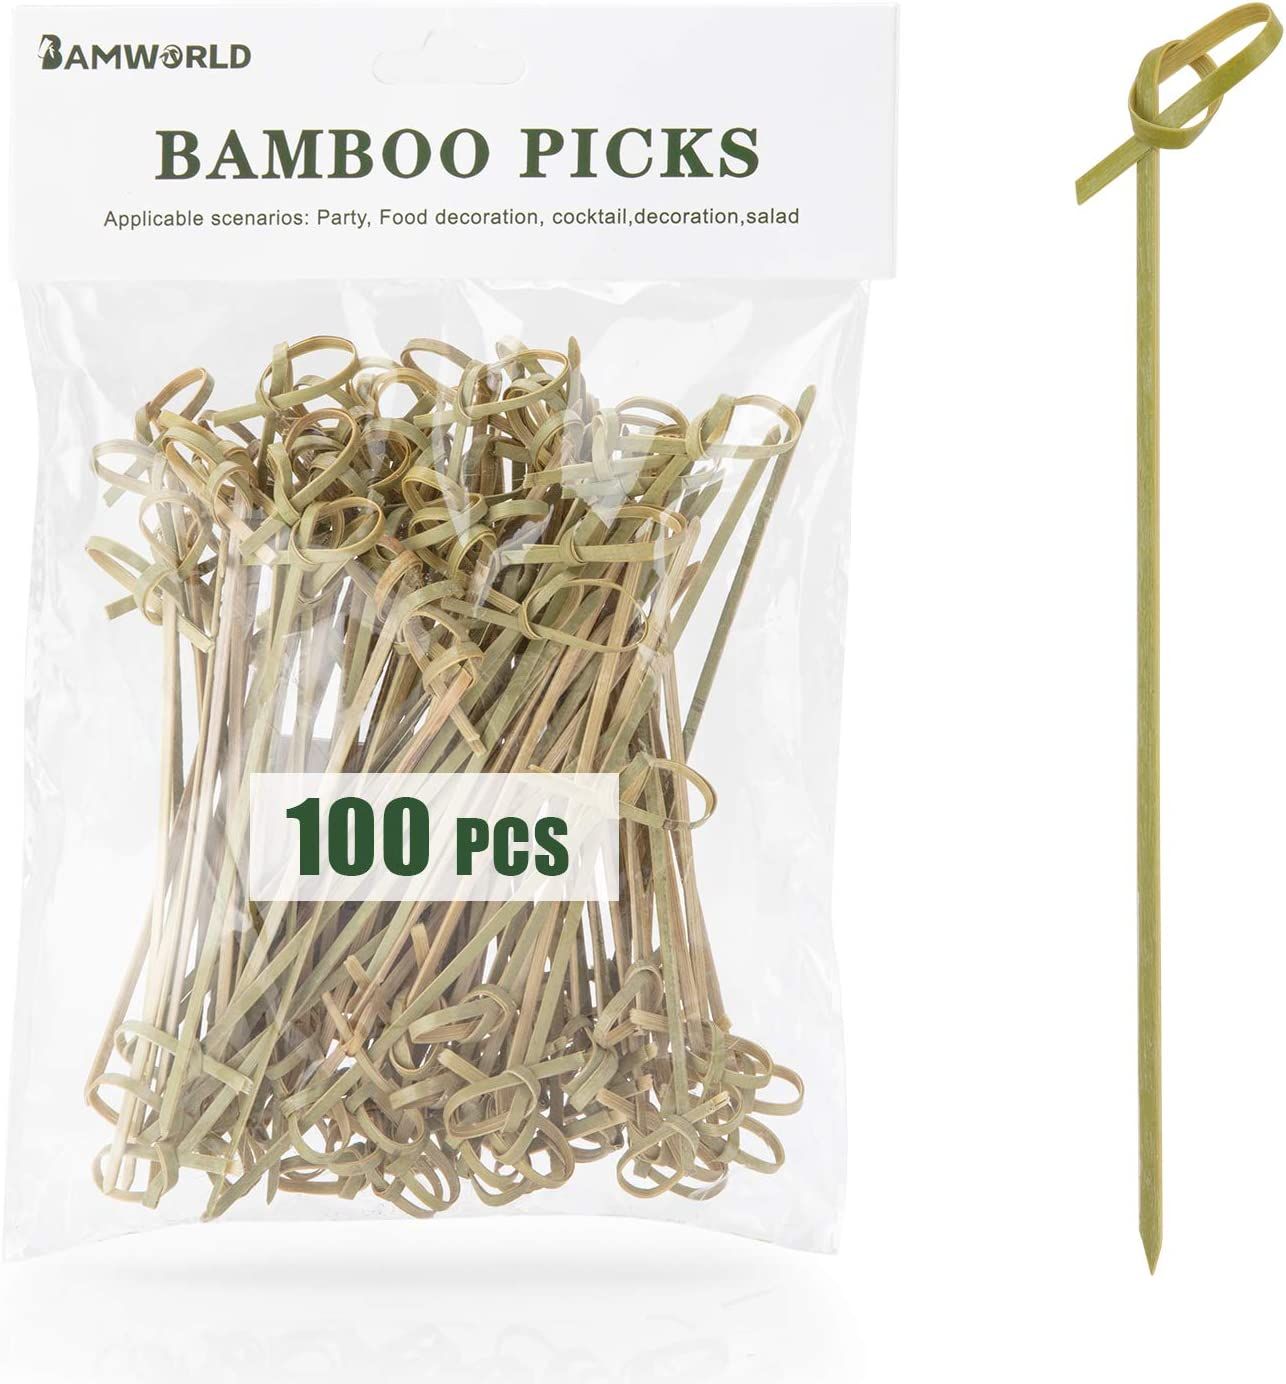 Cocktail Picks Bamboo Skewers Bamboo Food Picks Appetizer Skewers 4.7 Inch Toothpicks with Looped Knot Skewers for Party Fruit and Snacks (Knot, 100)